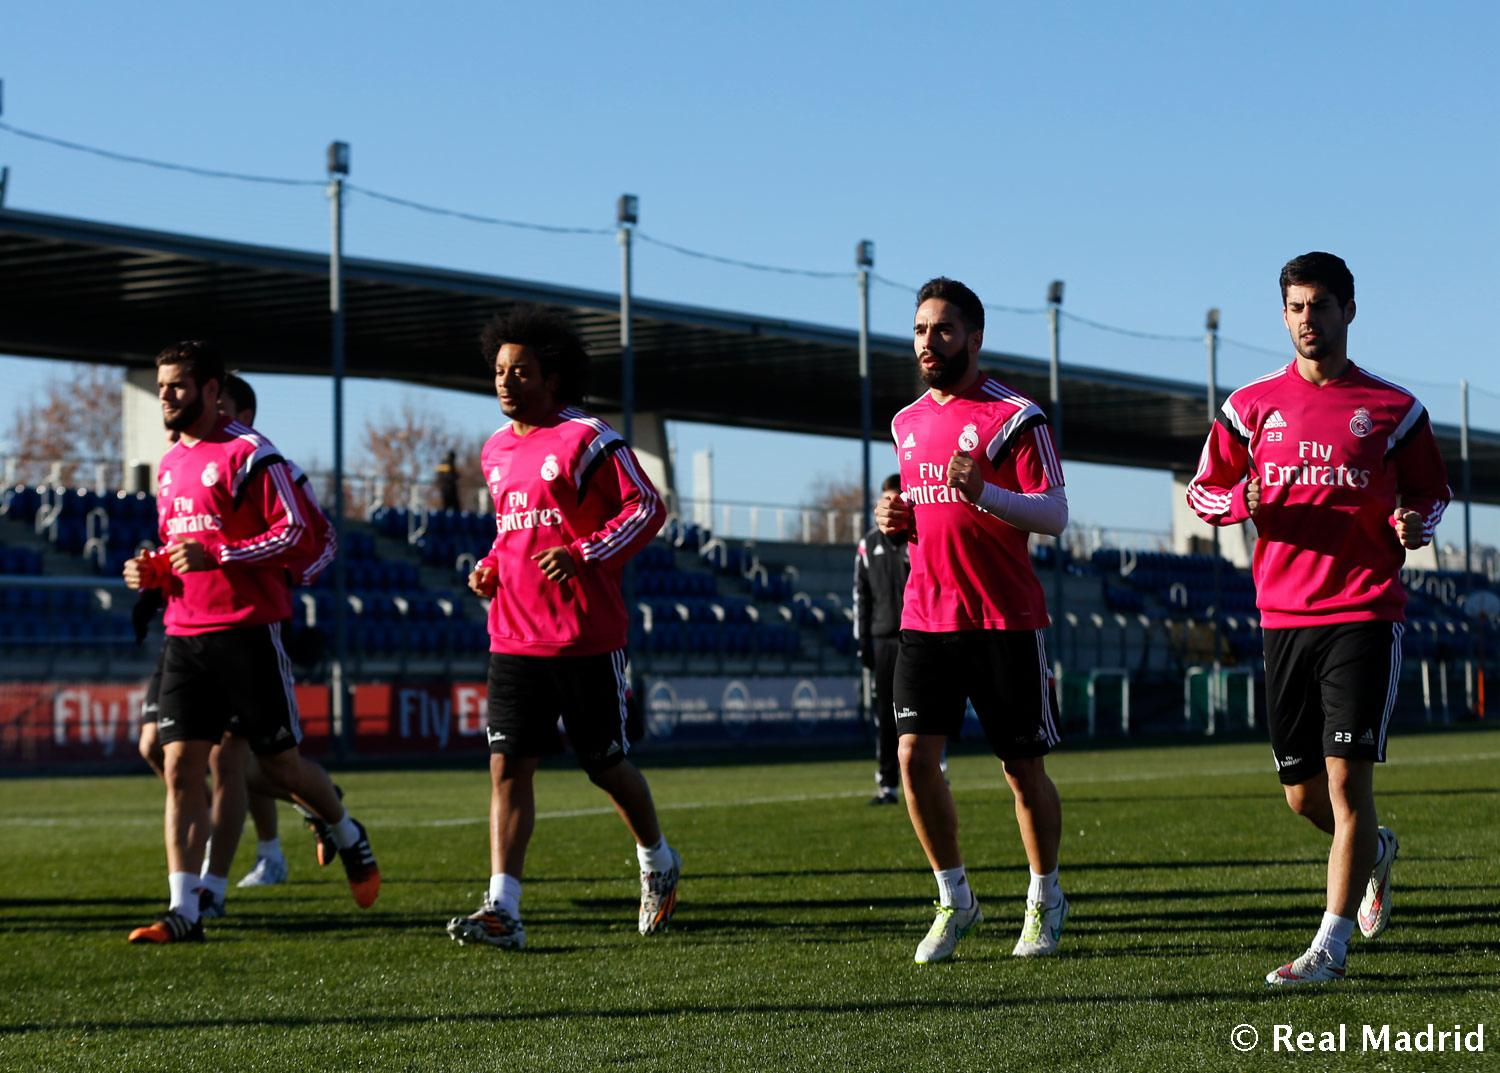 Real Madrid - Entrenamiento del Real Madrid - 12-01-2015